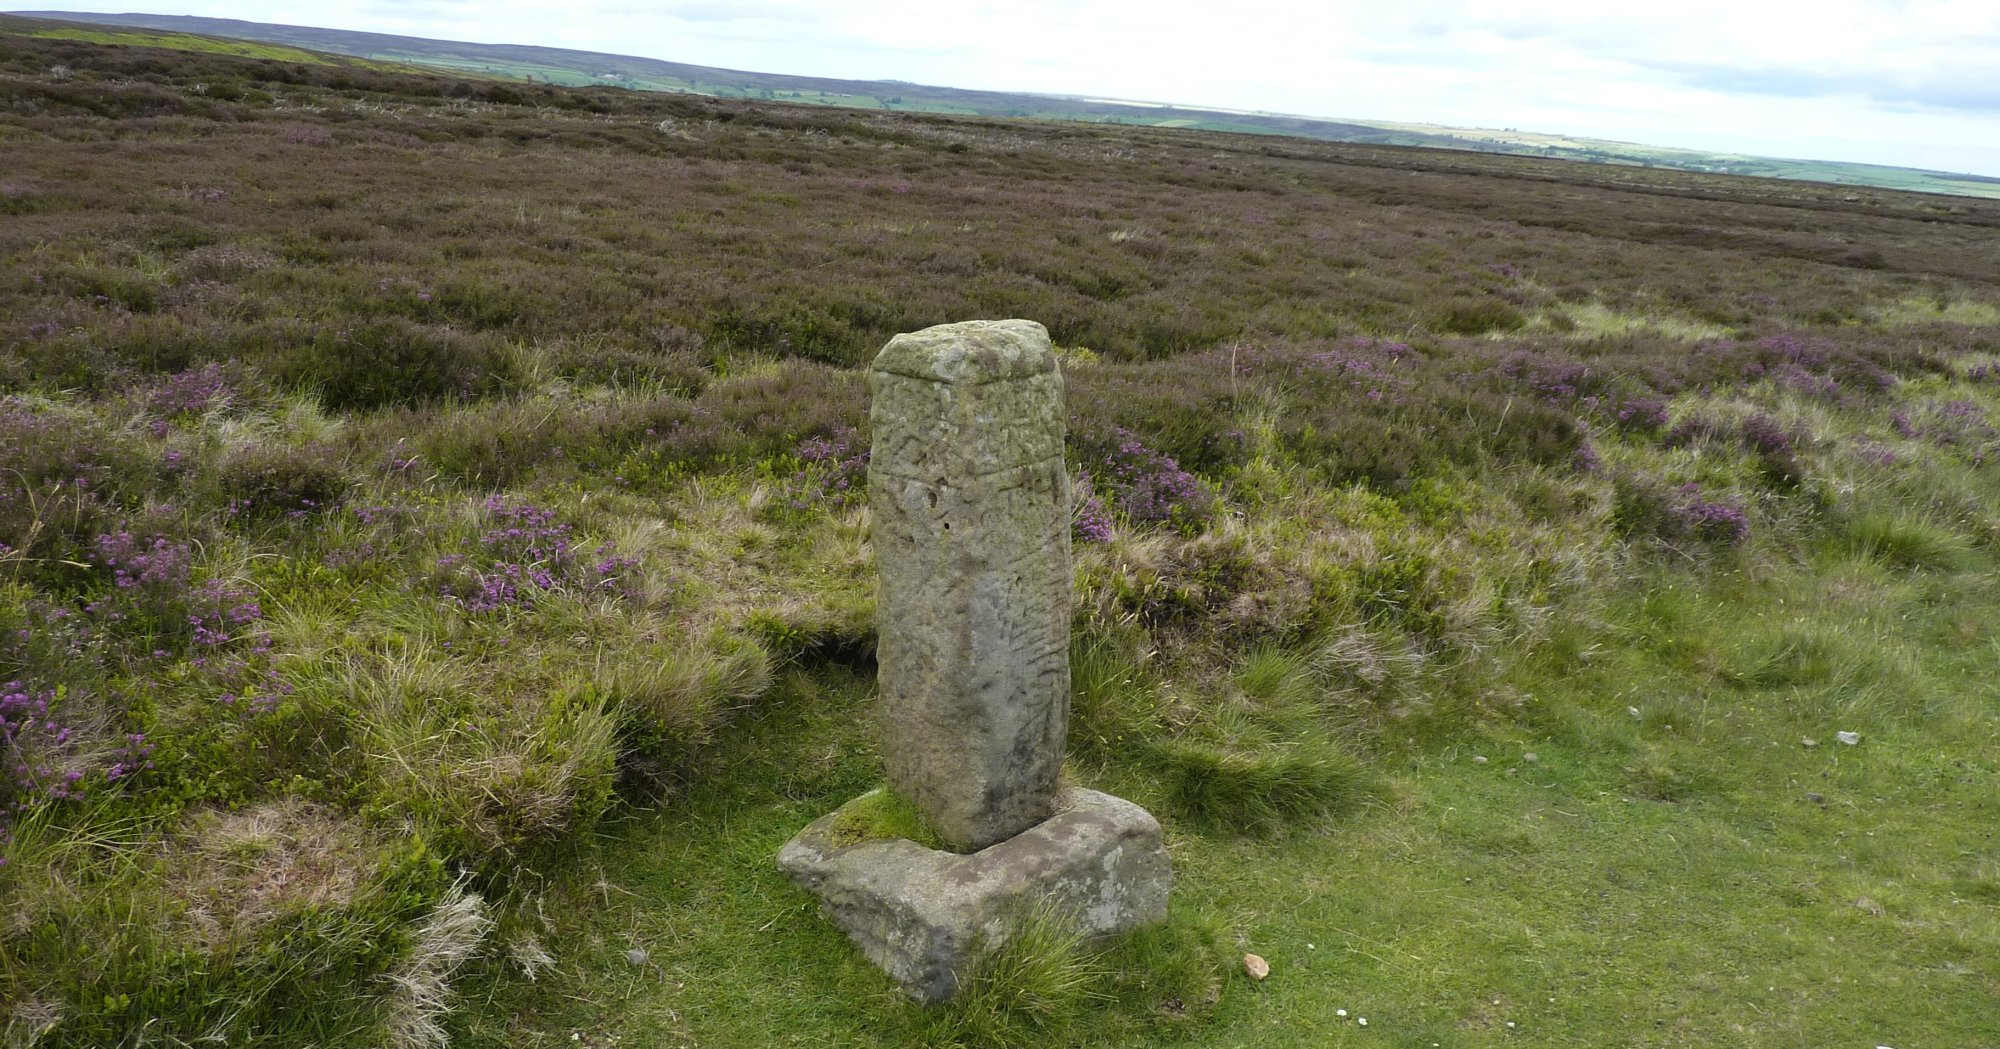 One of the many old boundary and marker stones